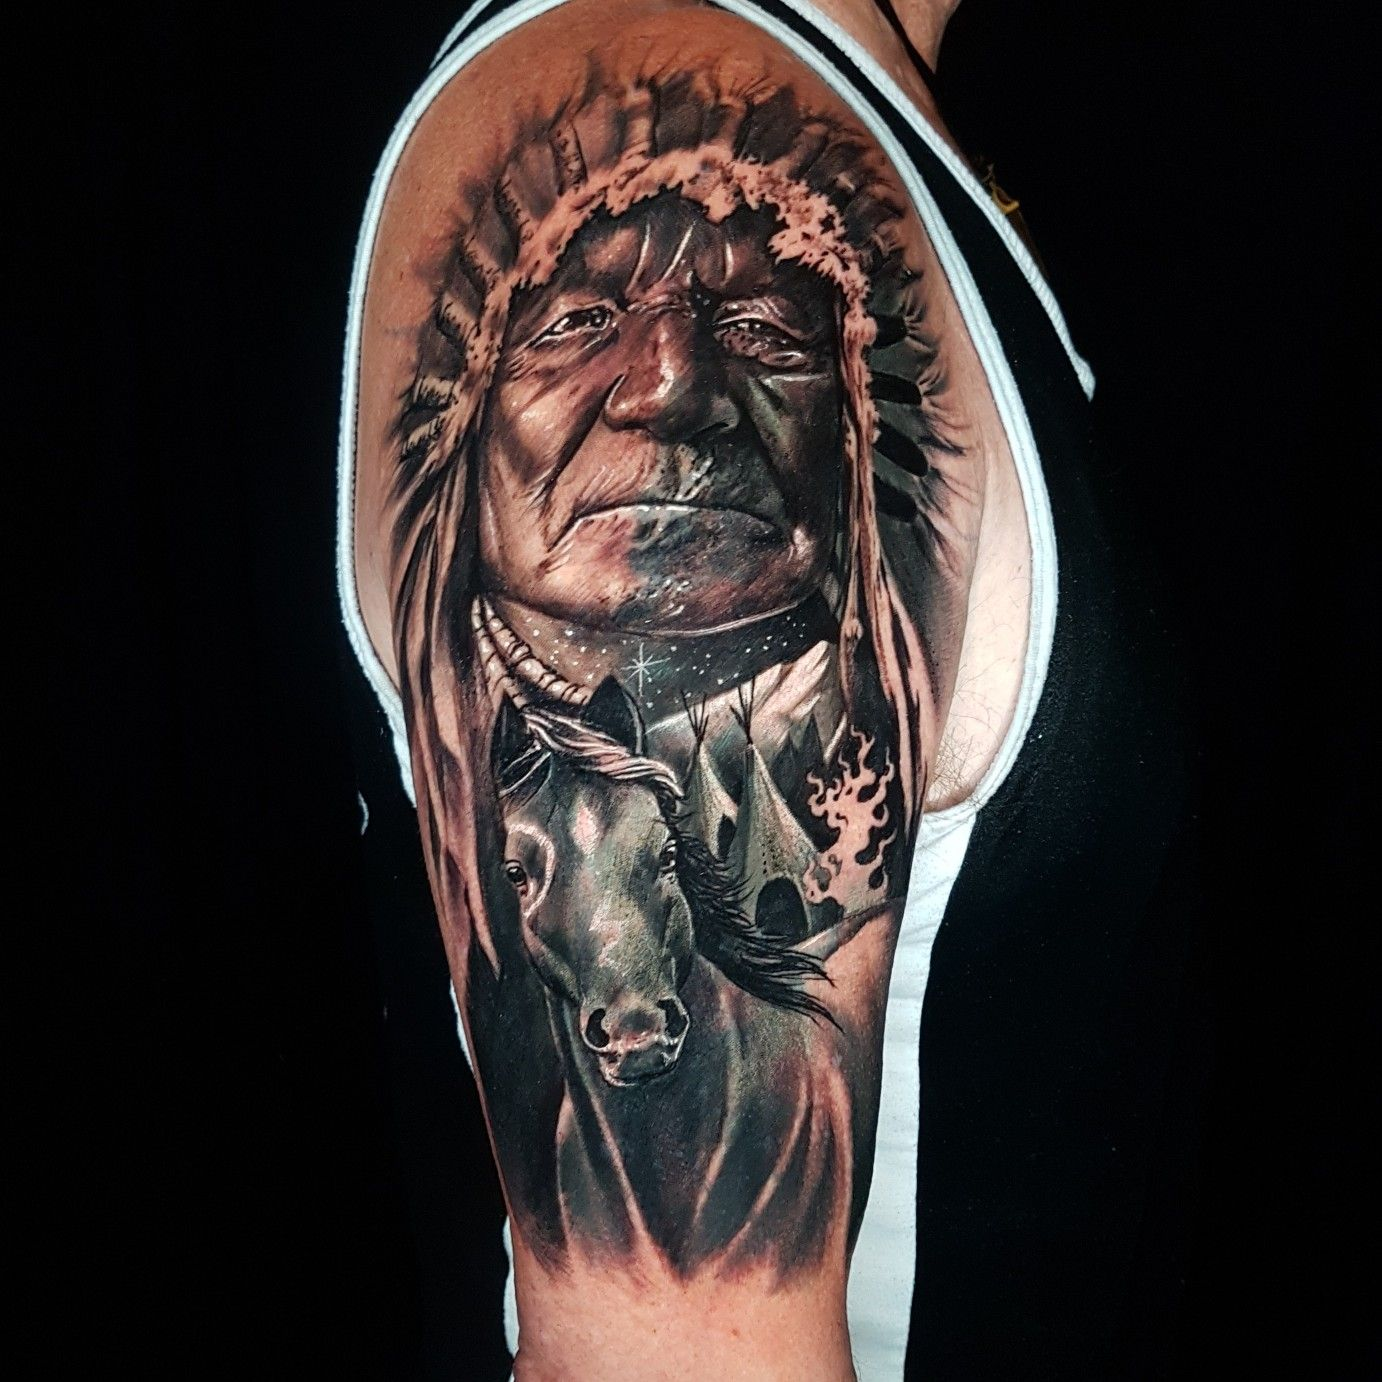 American Indian Chief And War Pony In 2020 Native American Tattoo Designs Indian Tattoo Tattoos